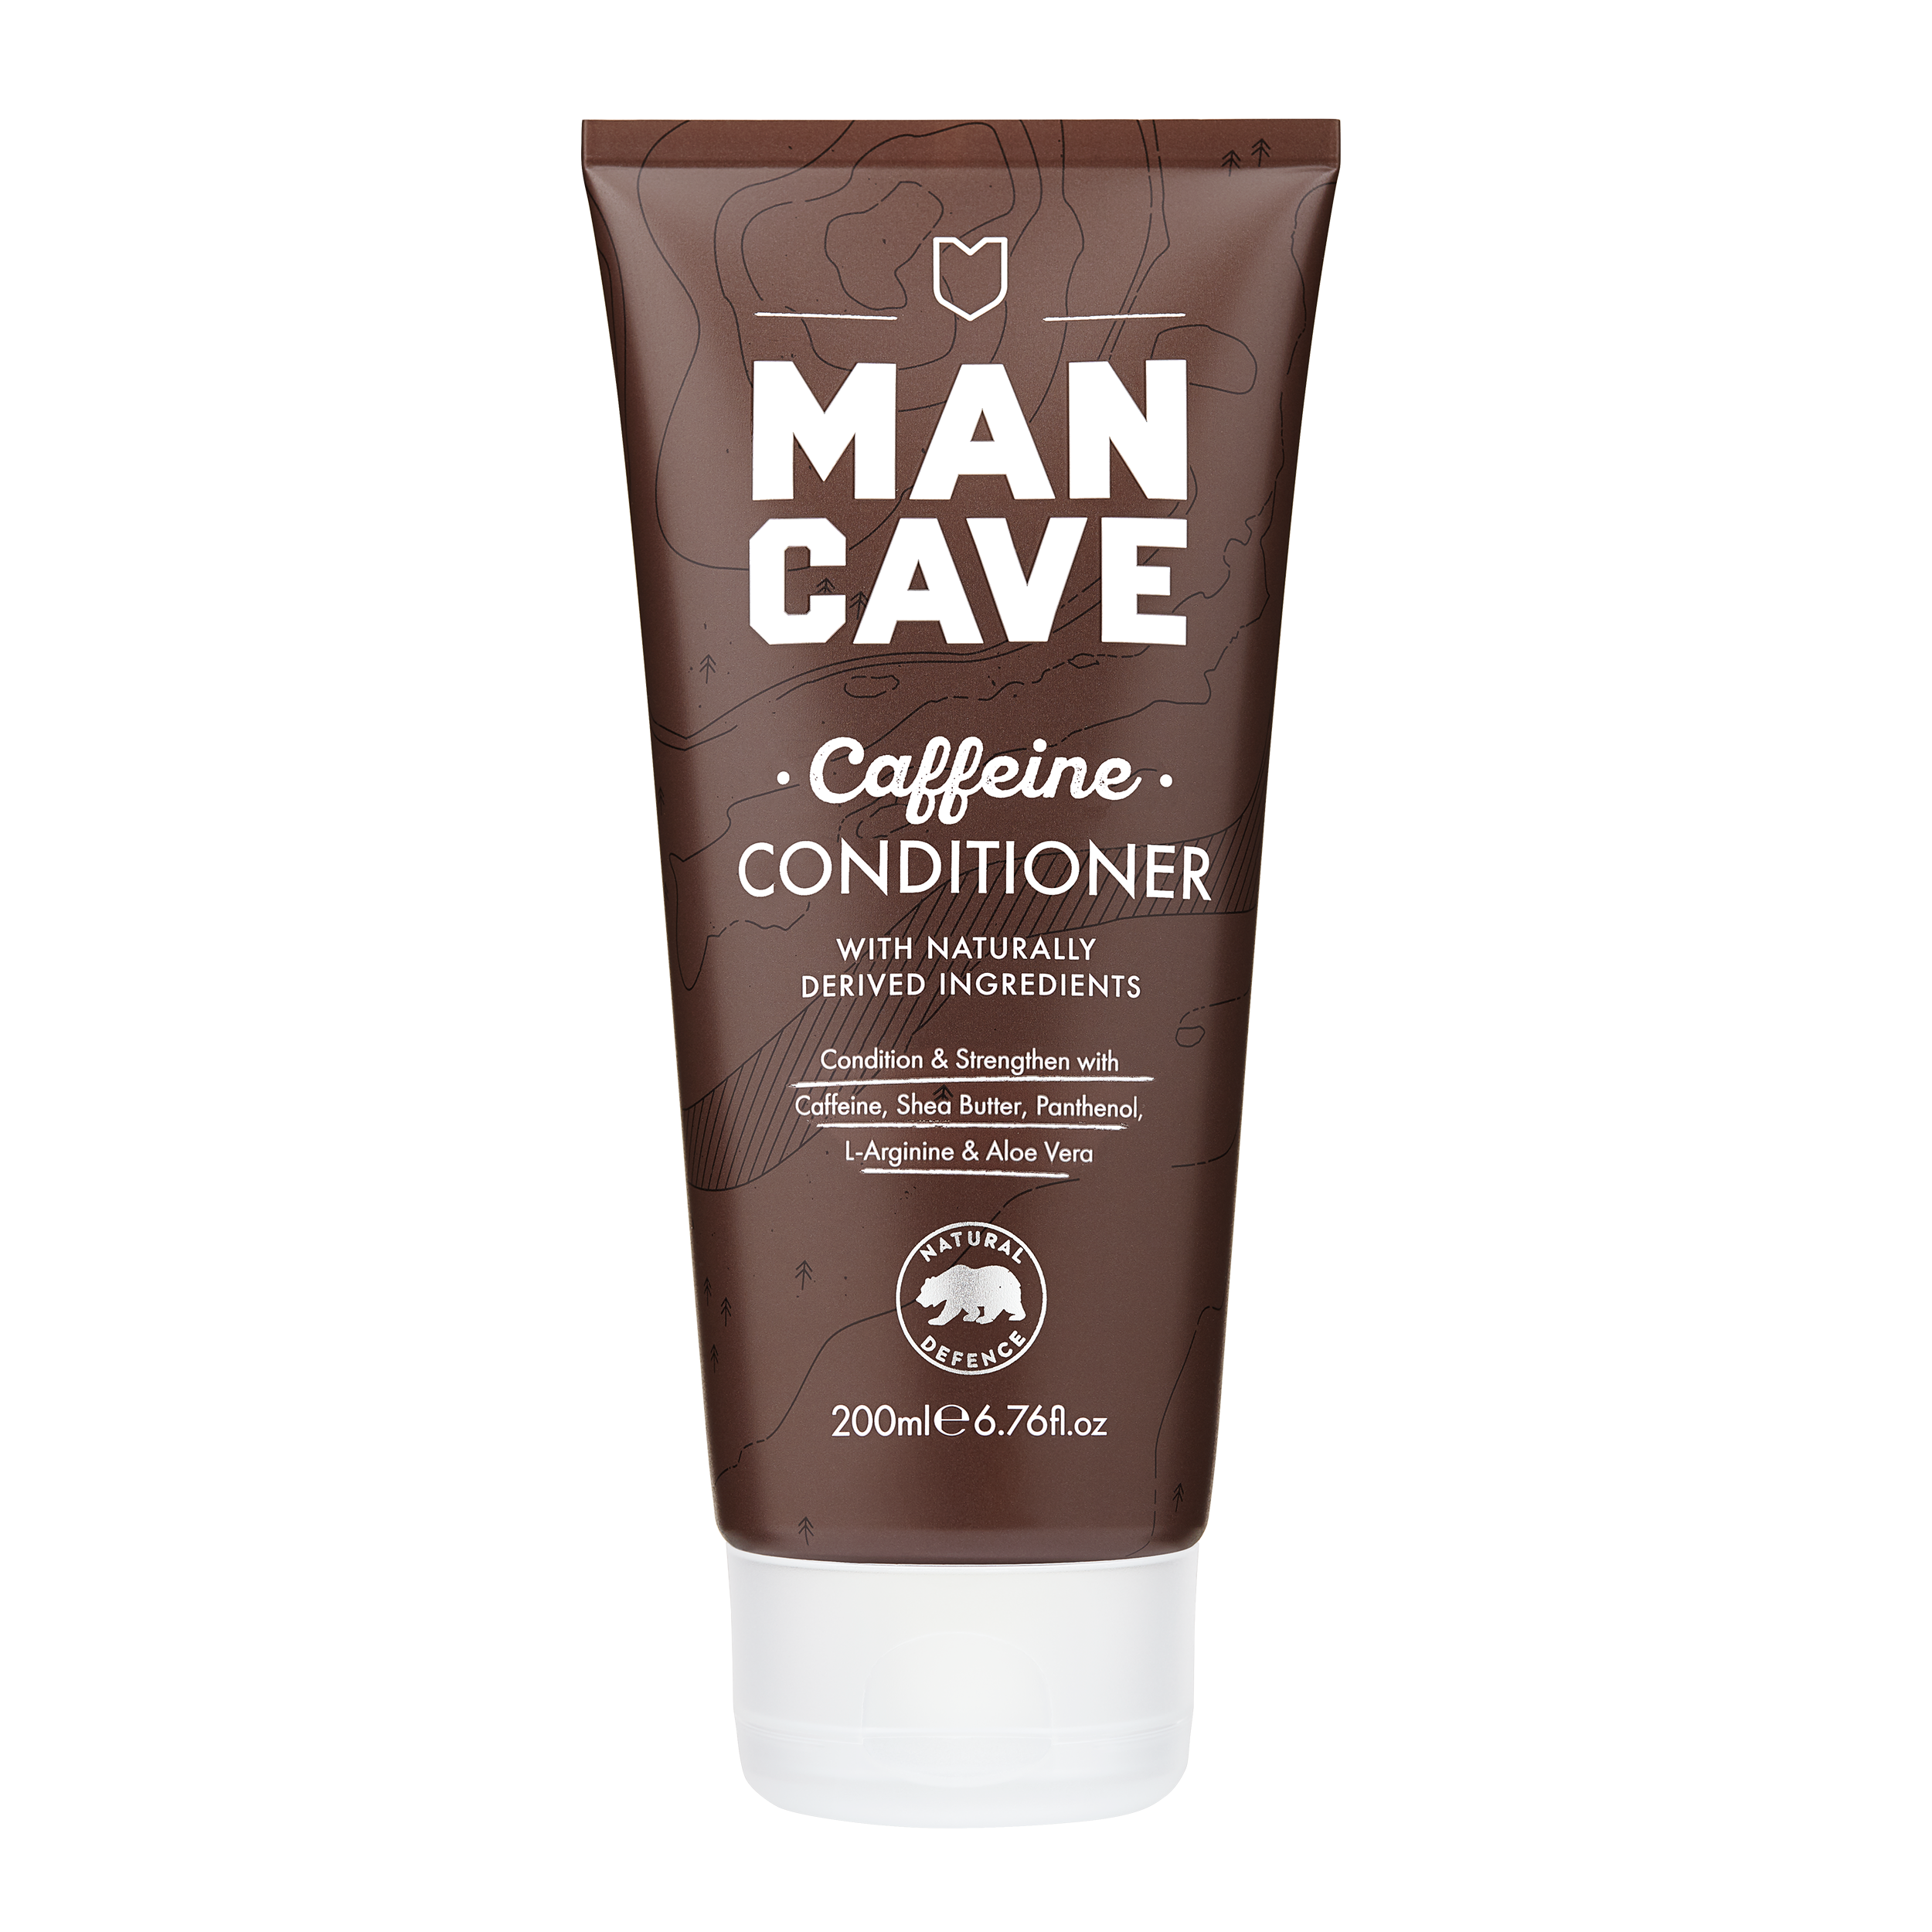 The ManCave caffeine conditioner  100% recyclable brown tube. Cruelty free certified and vegan friendly.